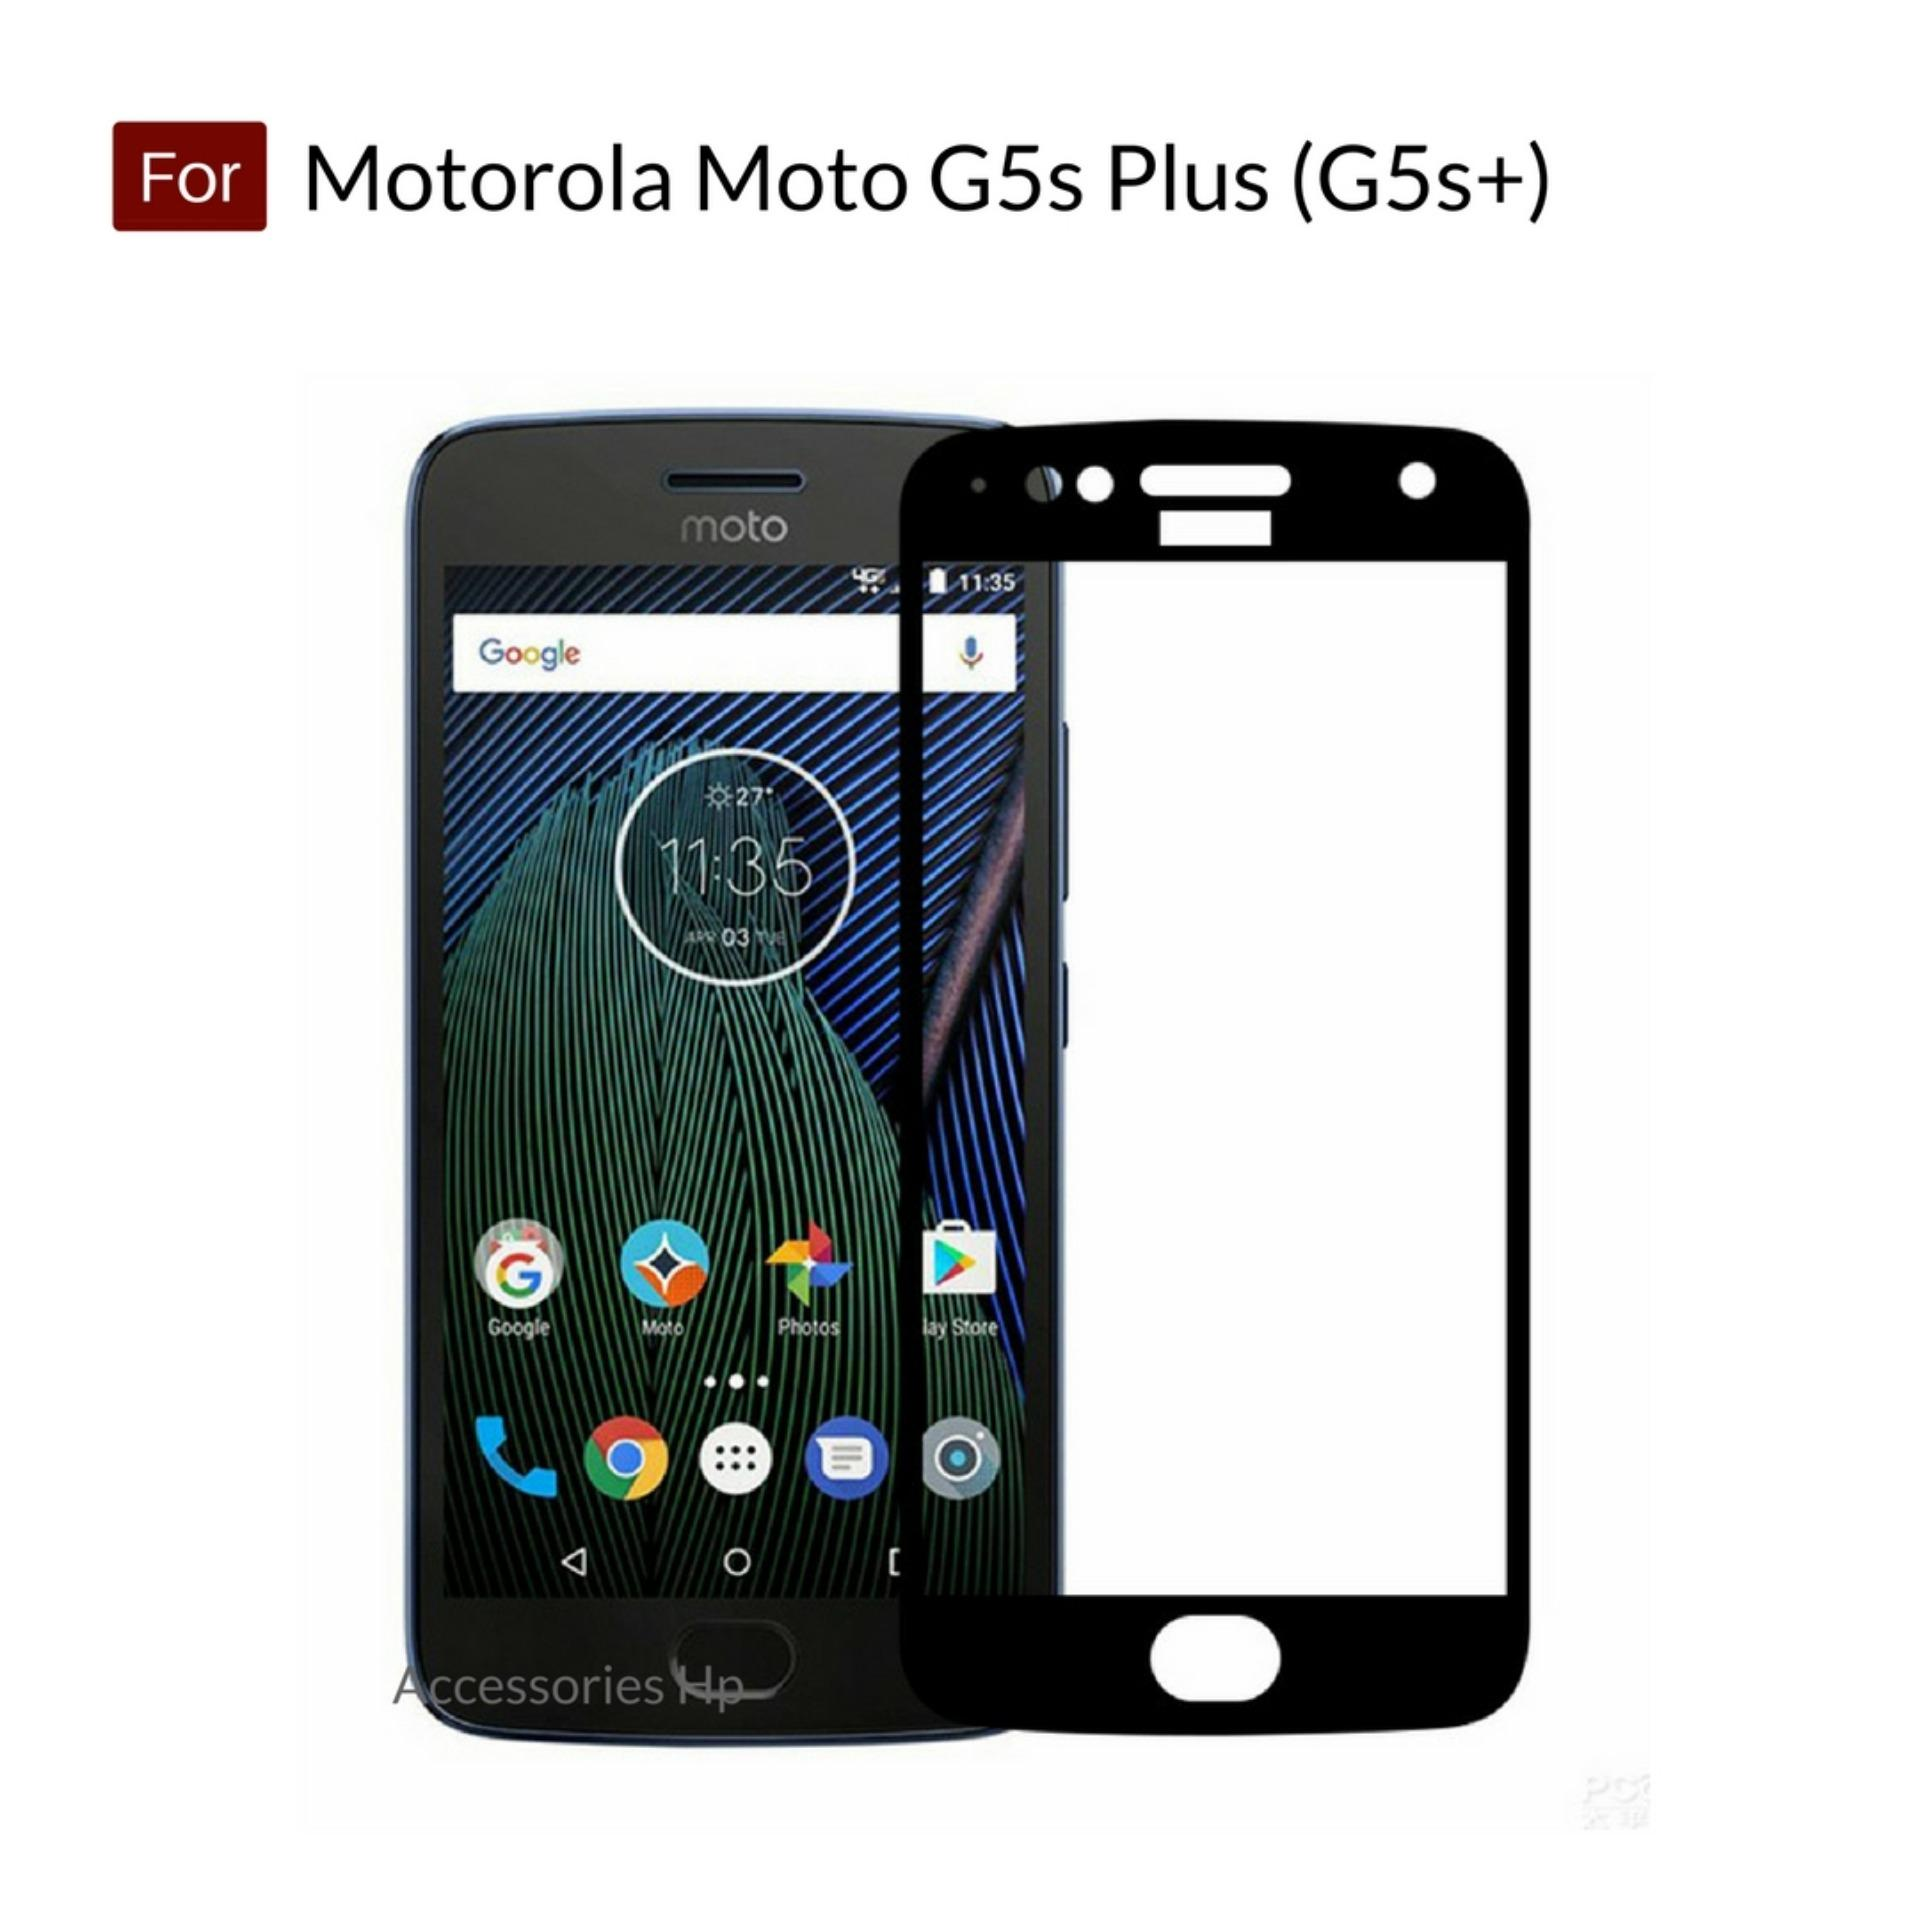 Accessories Hp Full Cover Tempered Glass Warna Screen Protector for Motorola Moto G5s Plus (G5s+) - Black